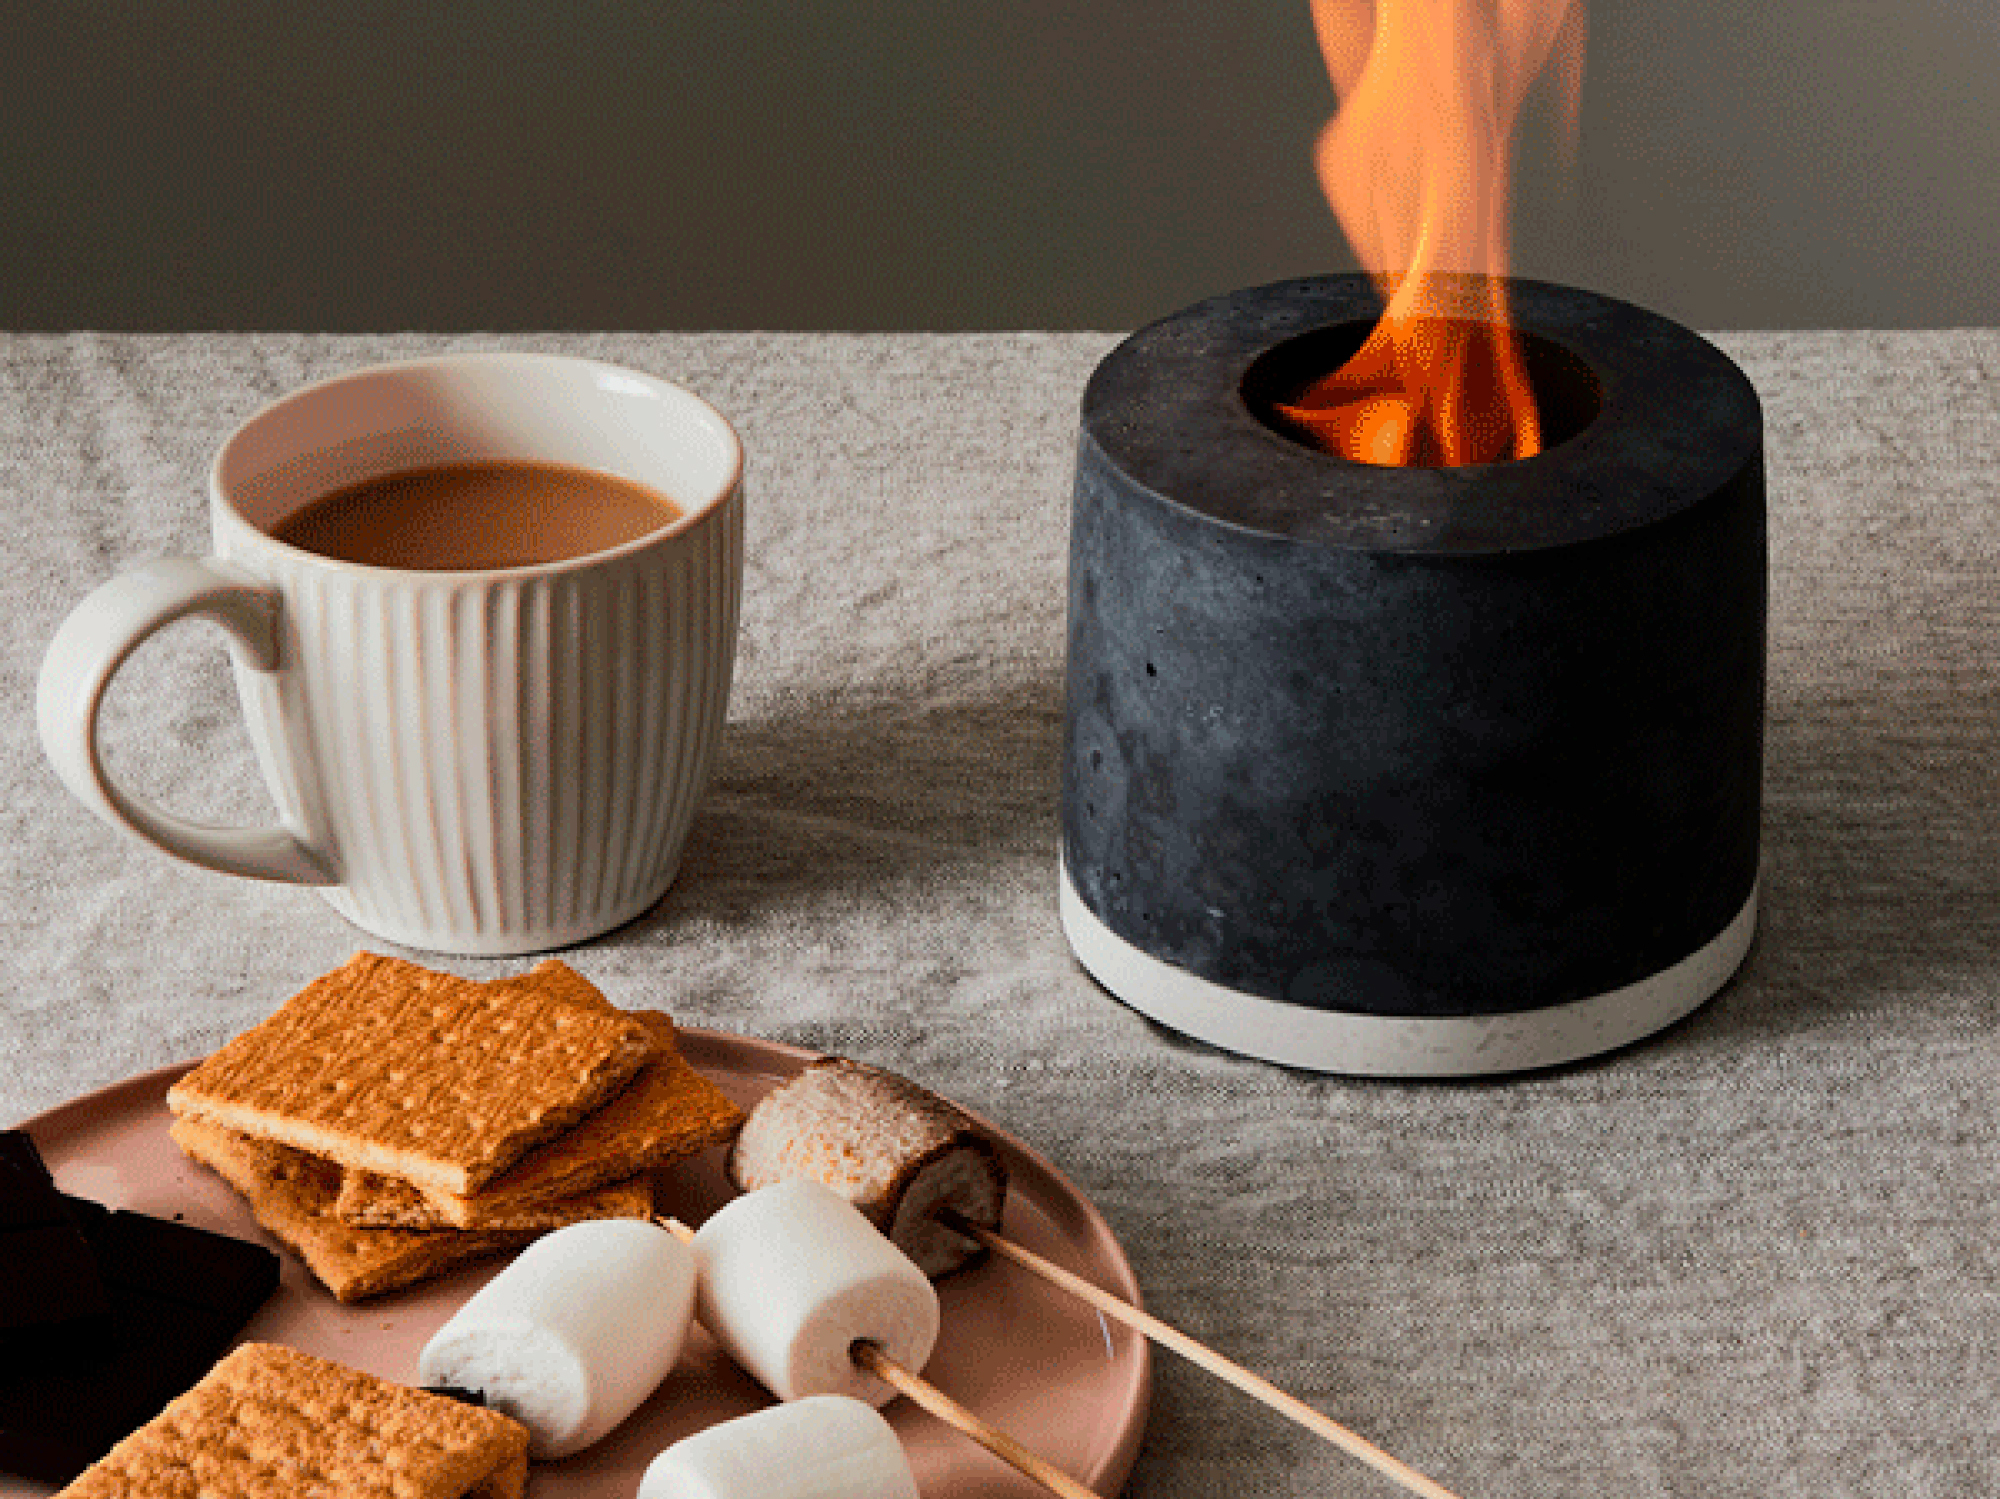 Best gifts for women, for her - Portable fireplace